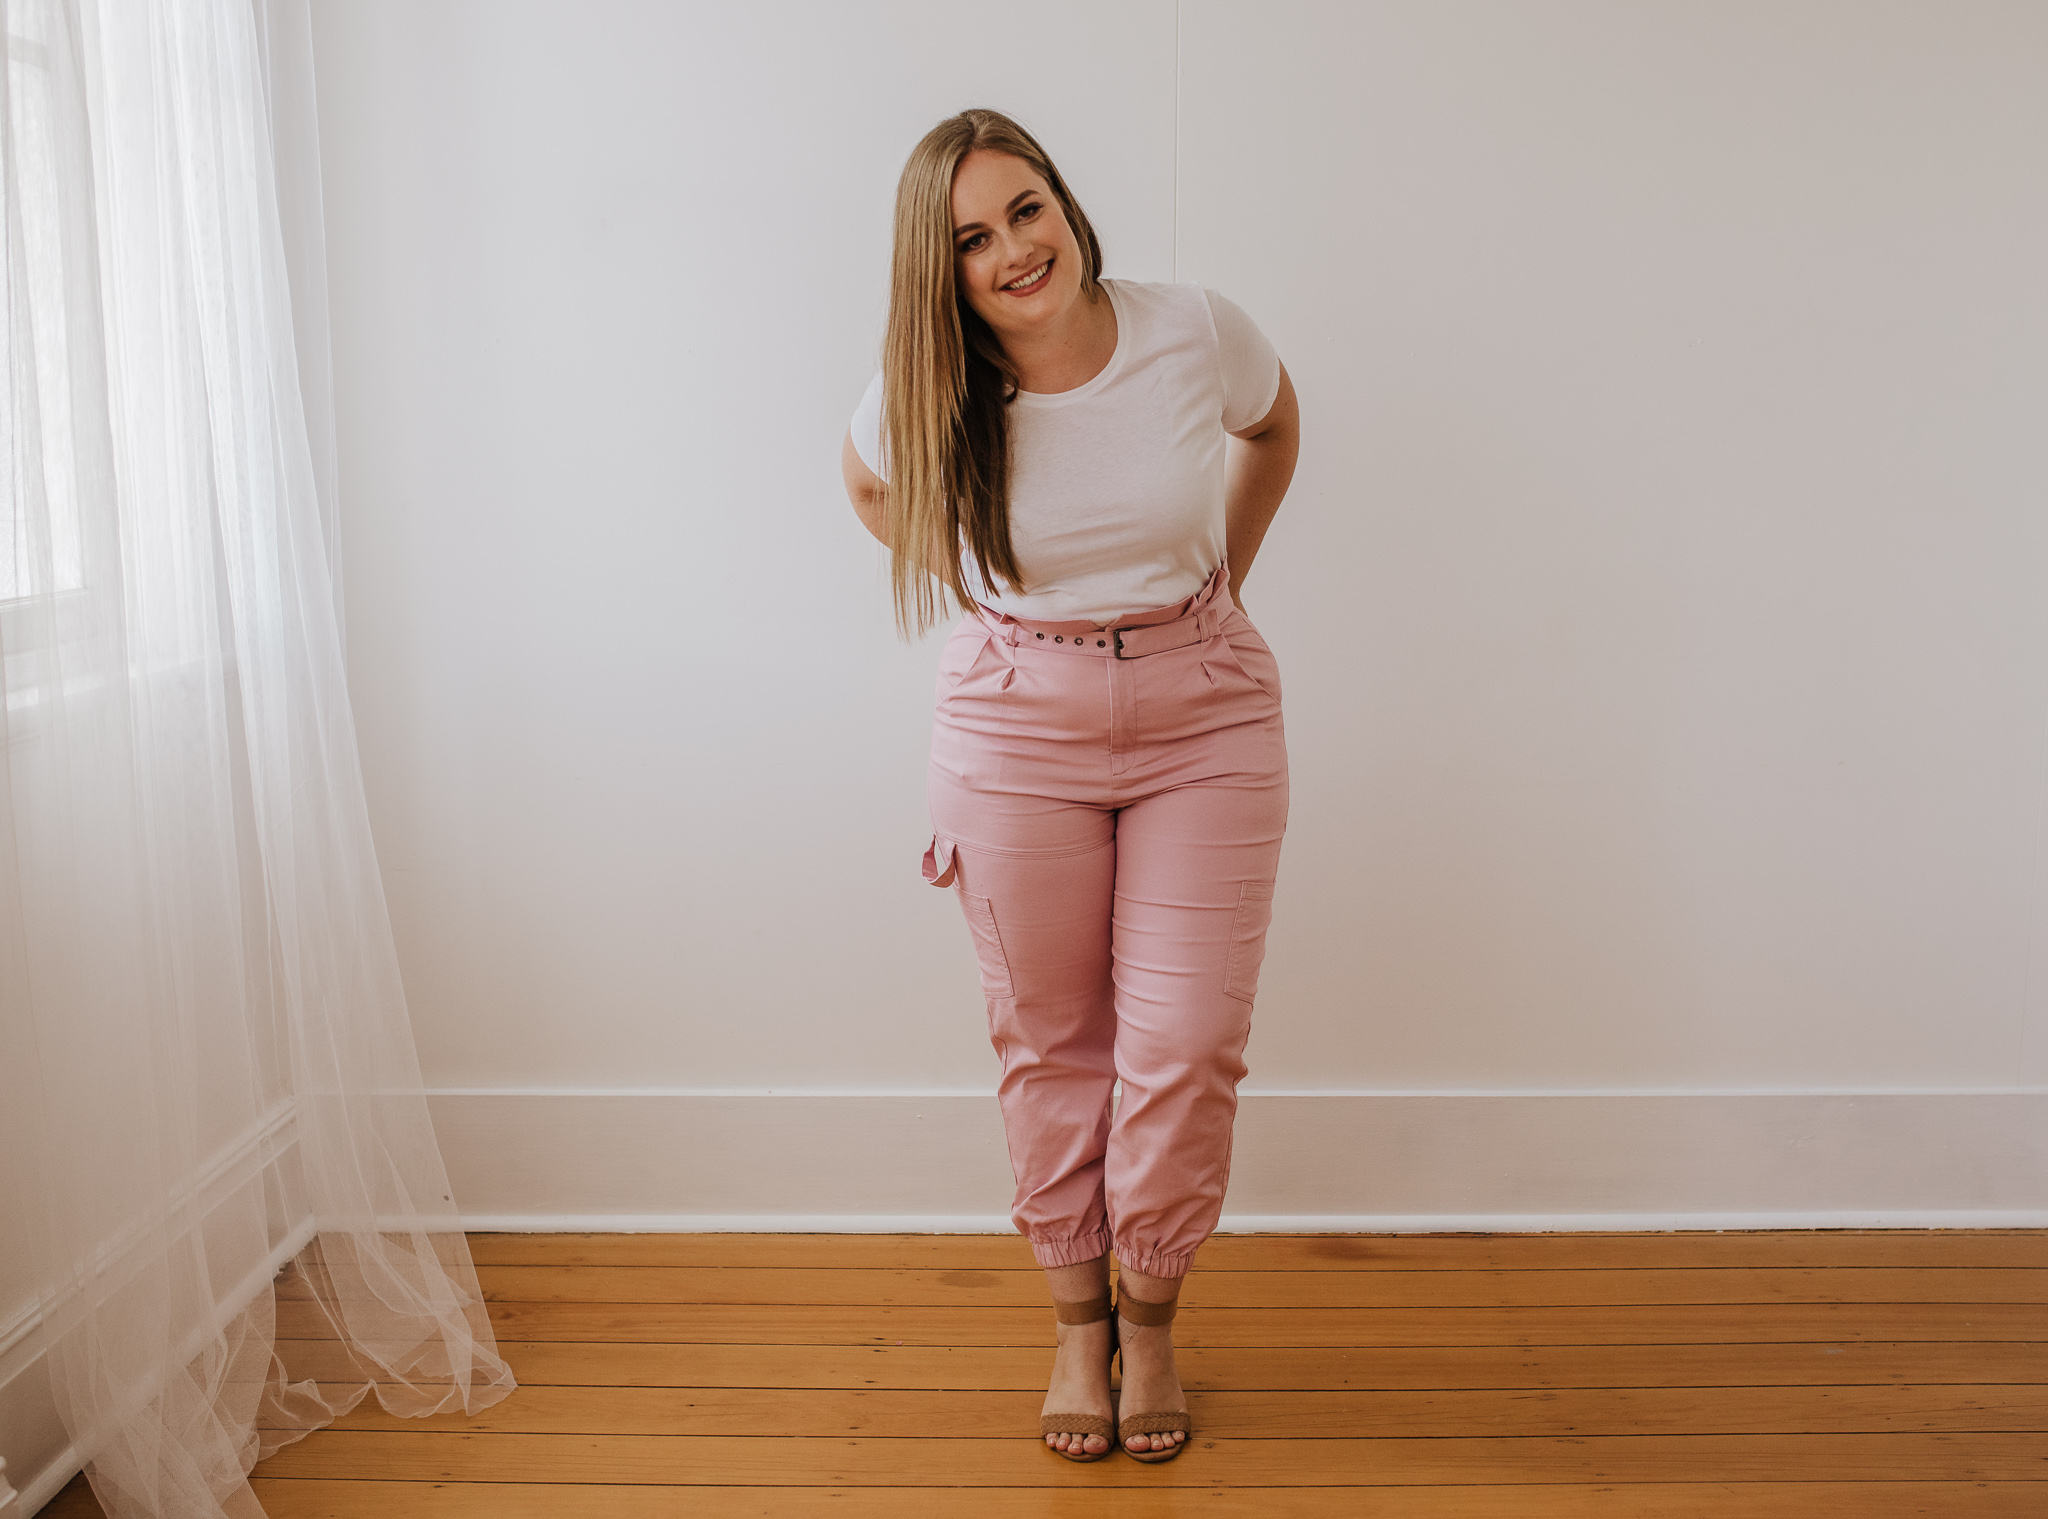 My name is Heidi. - Determined to follow my dreams, I moved home to Toowoomba with my parents. I wanted to create a business from the ground up. I'm passionate about connecting with like-minded people and helping them to maximise their business potential.